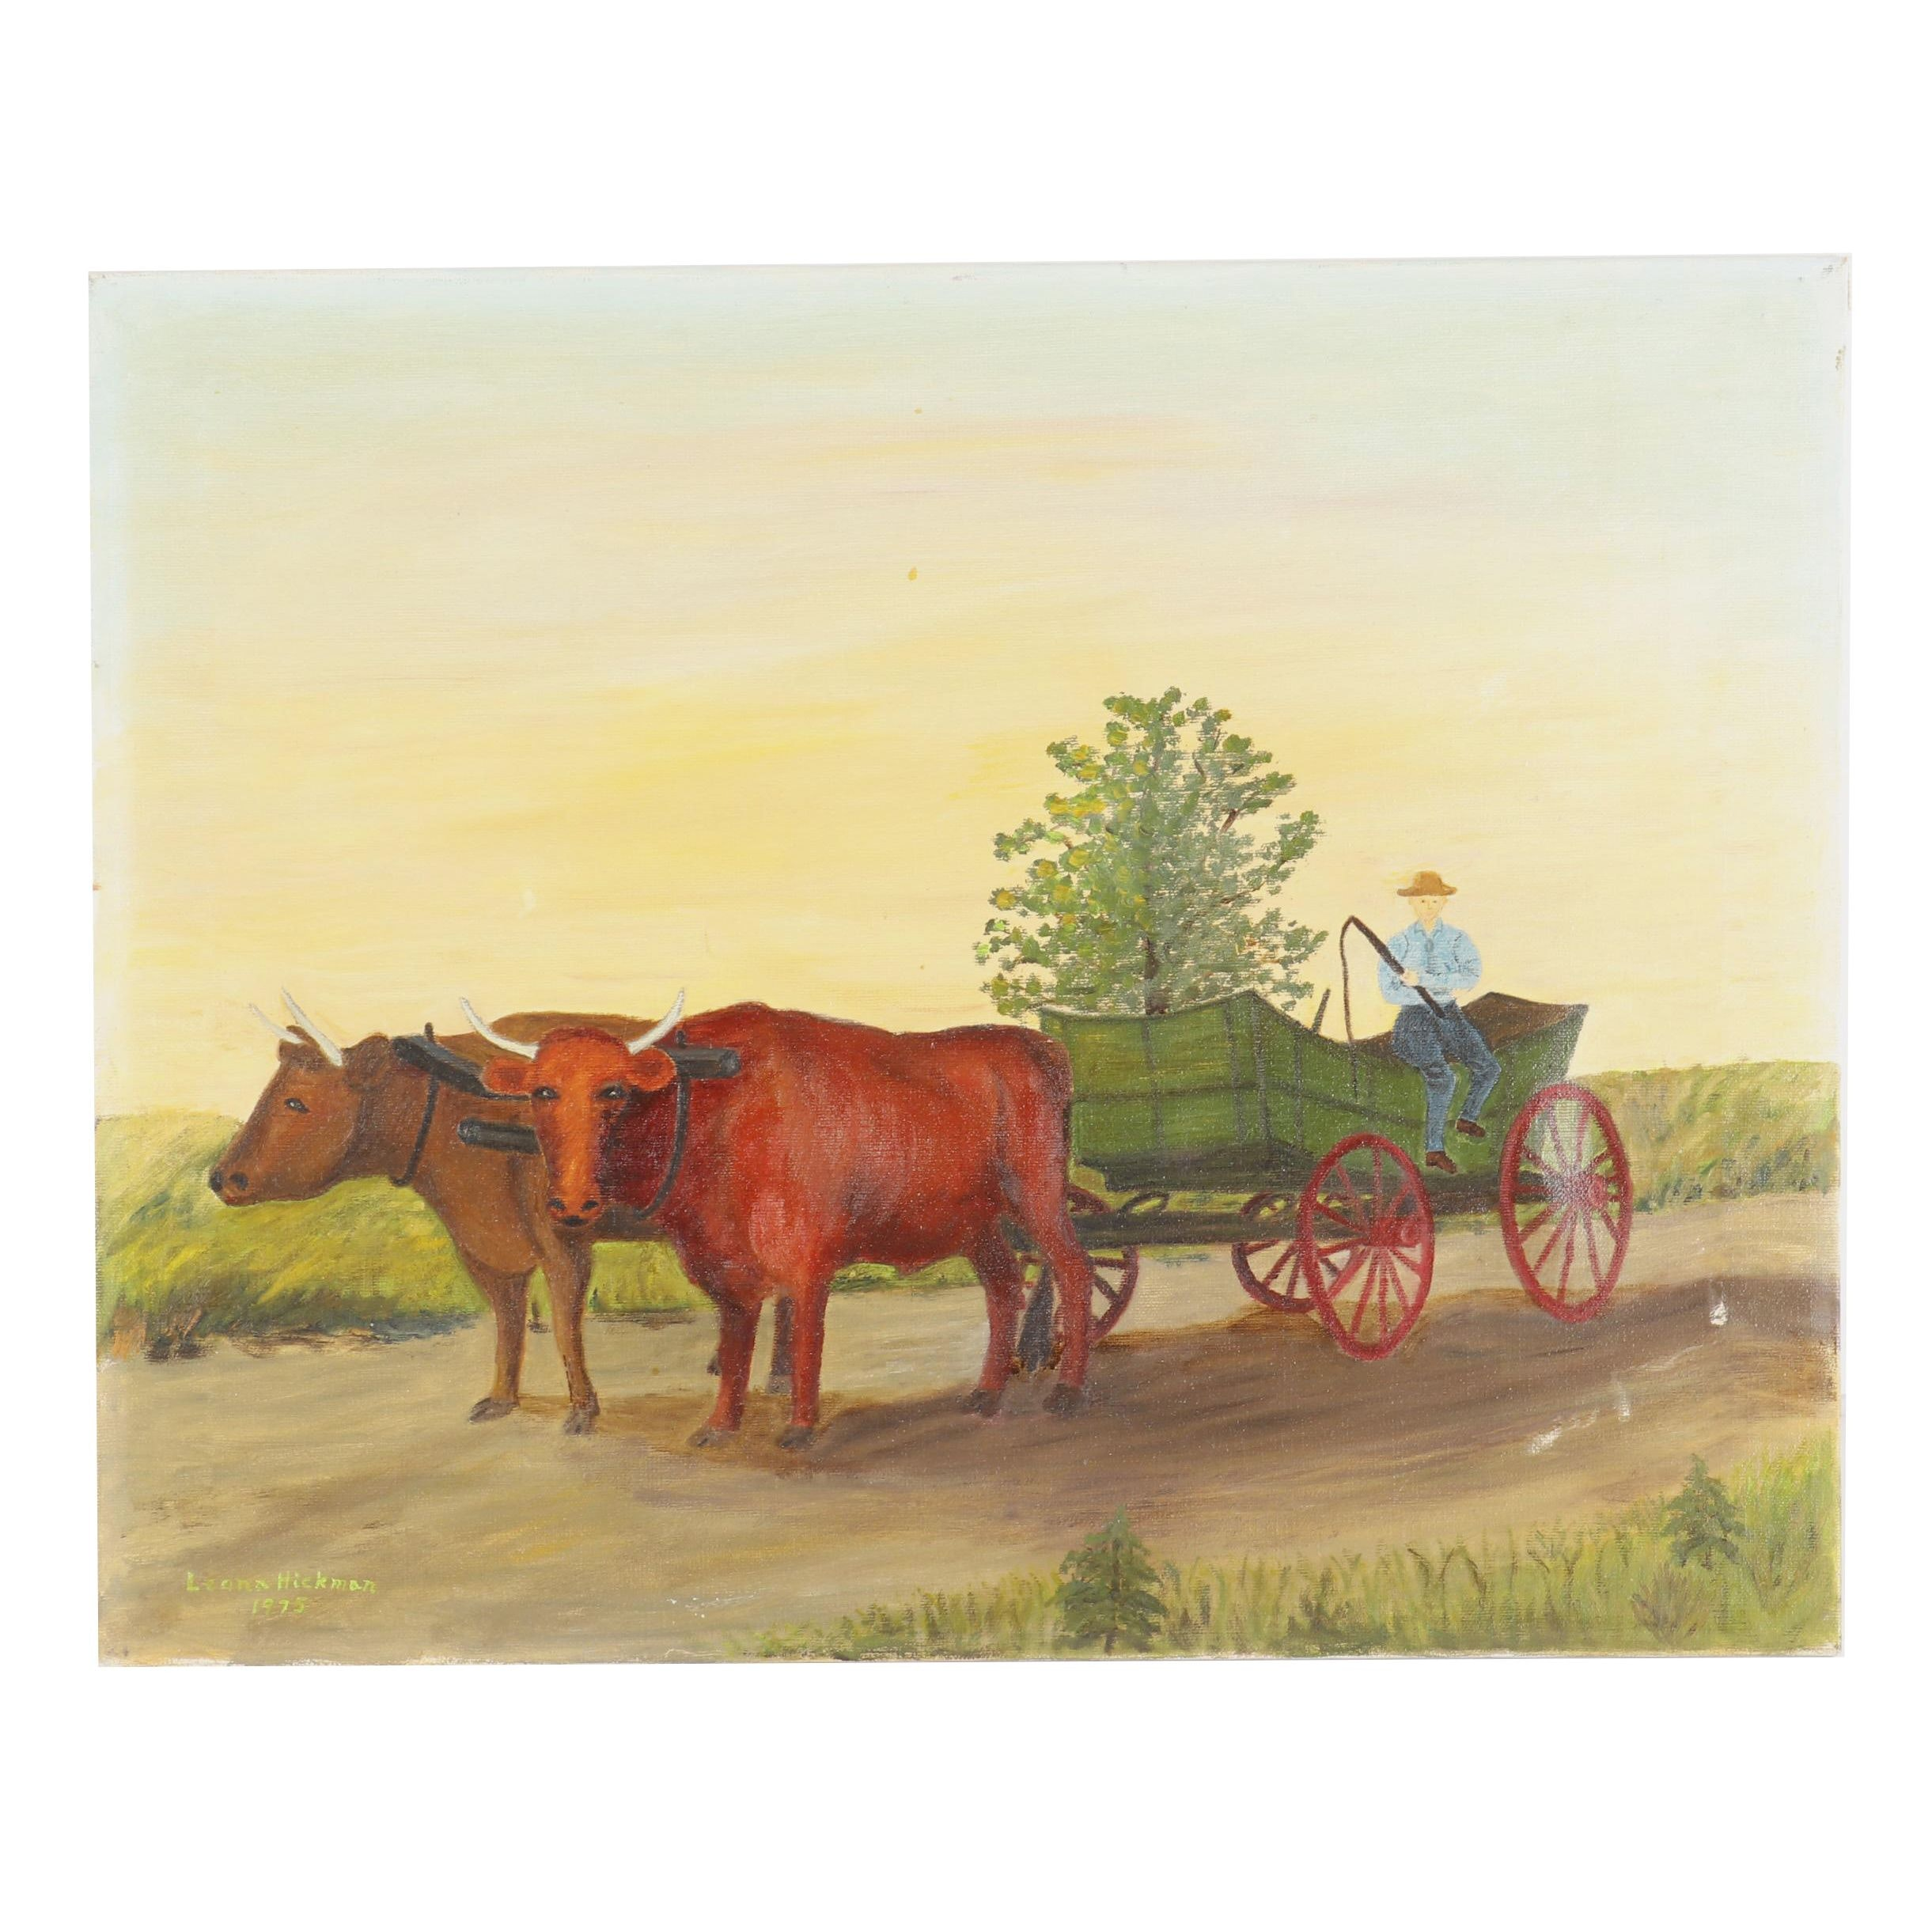 Leona Hickman Oil Painting of Ox Wagon